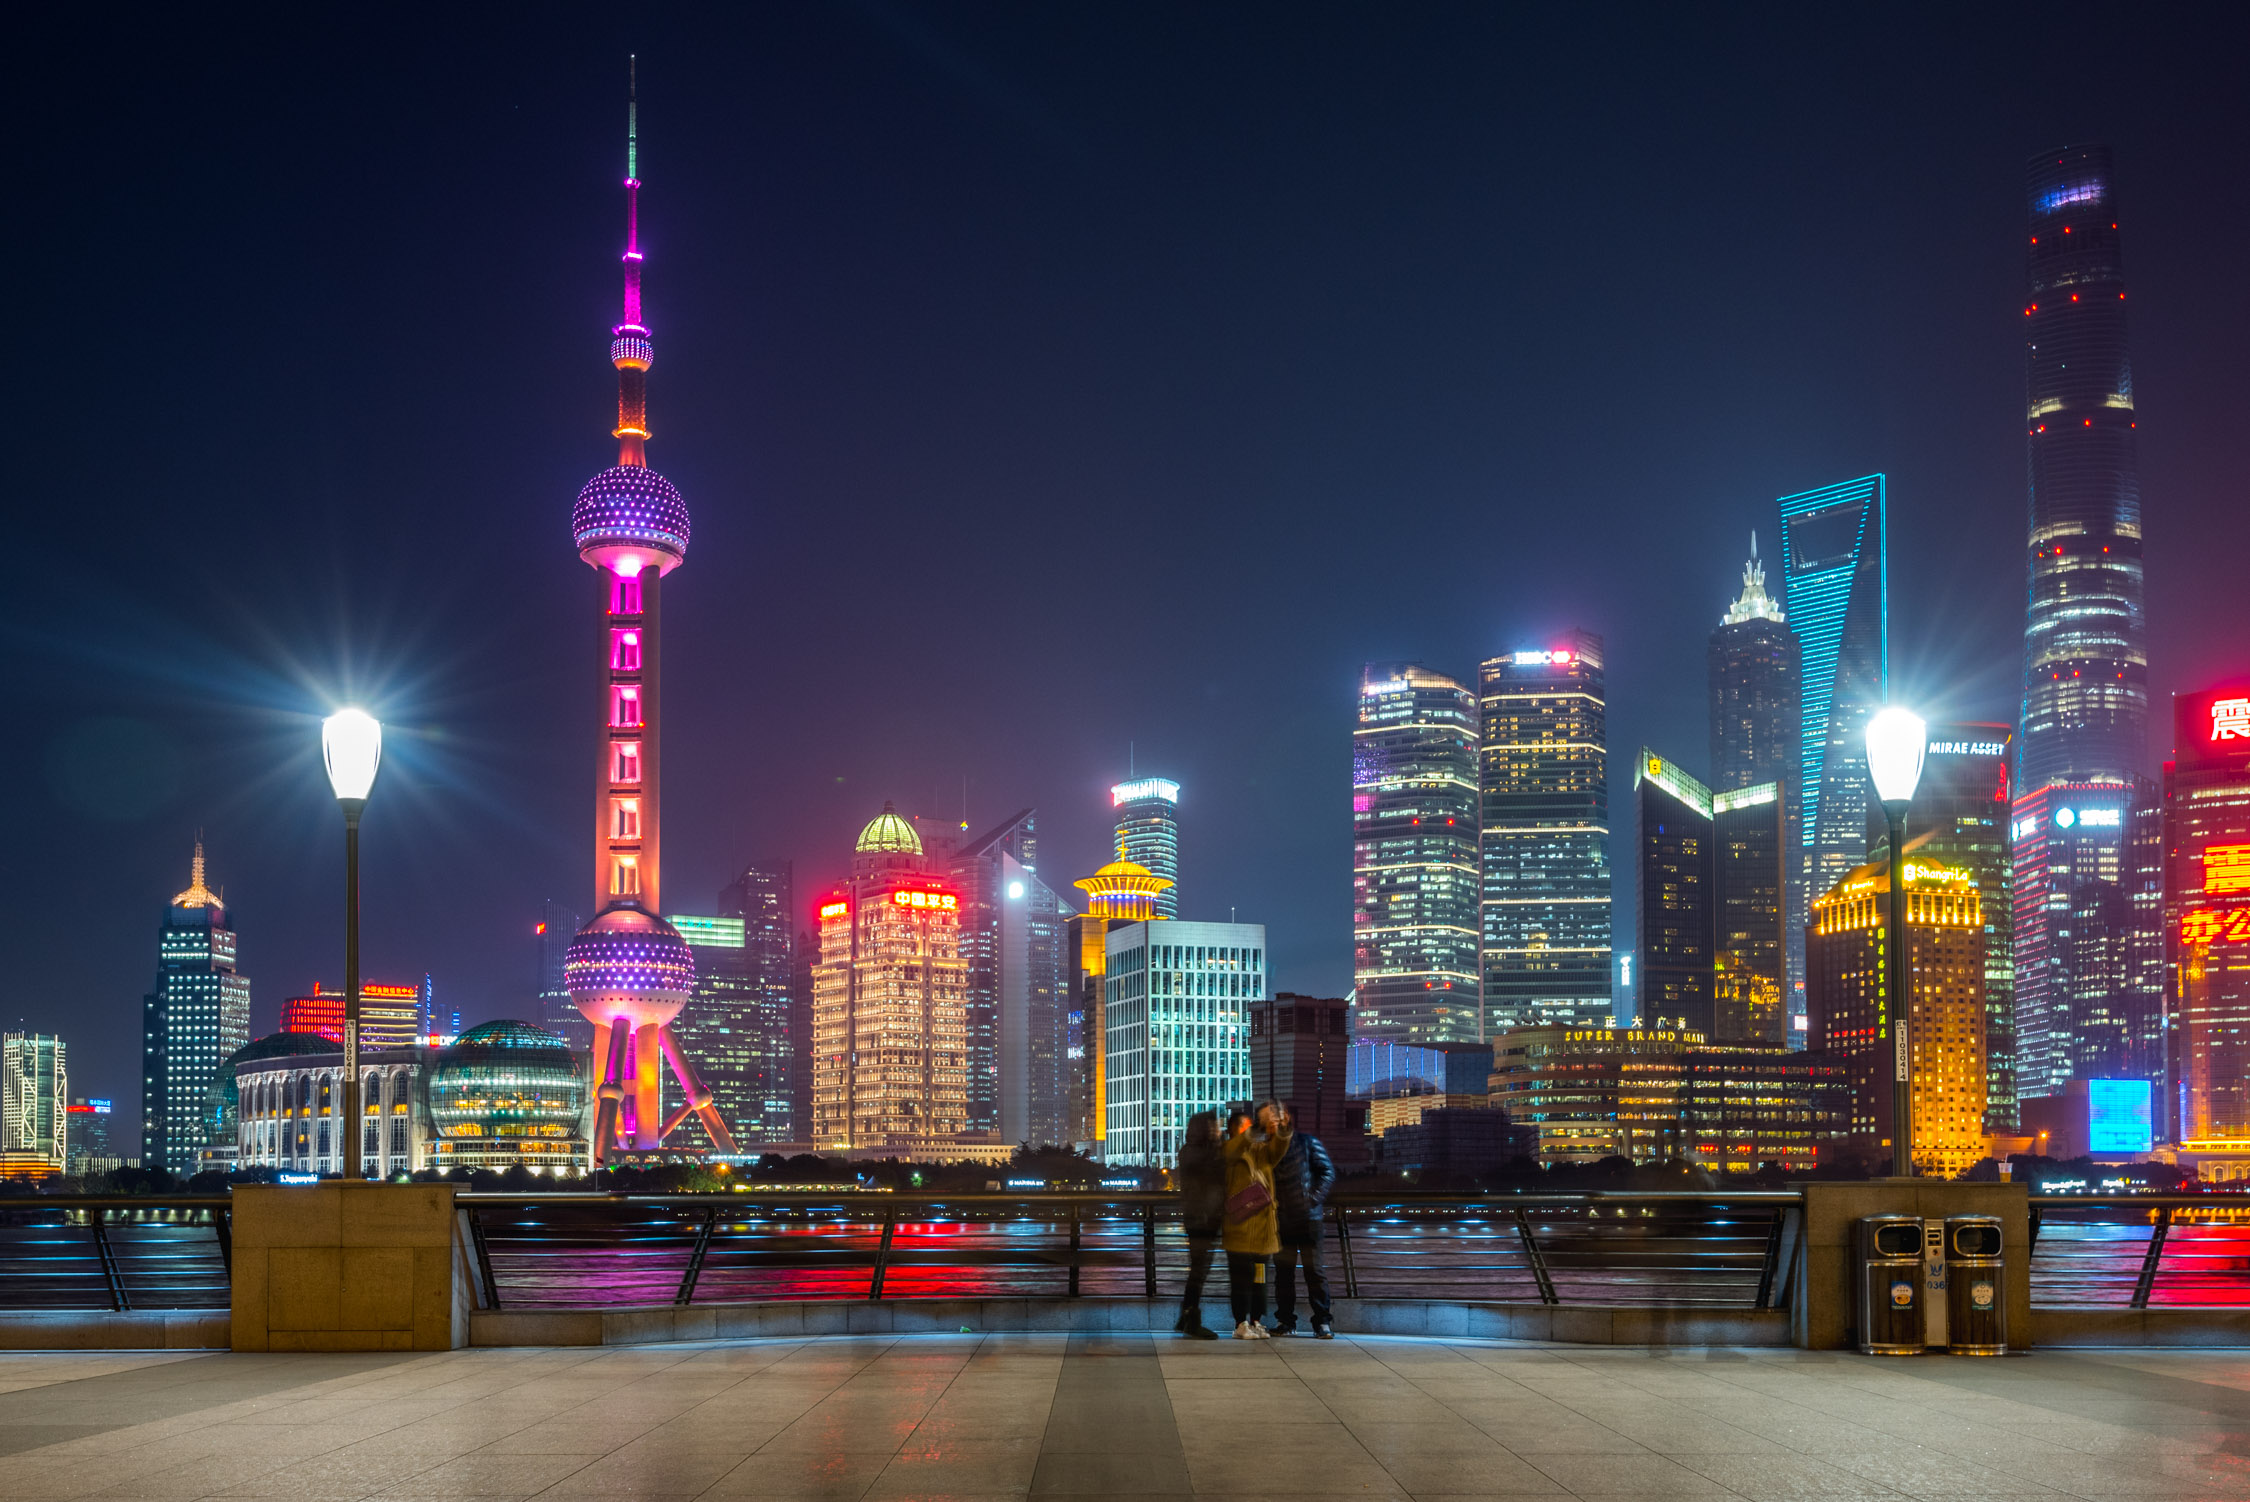 Looking out over the Pudong side of Shaghai, where the Kerry Hotel is located